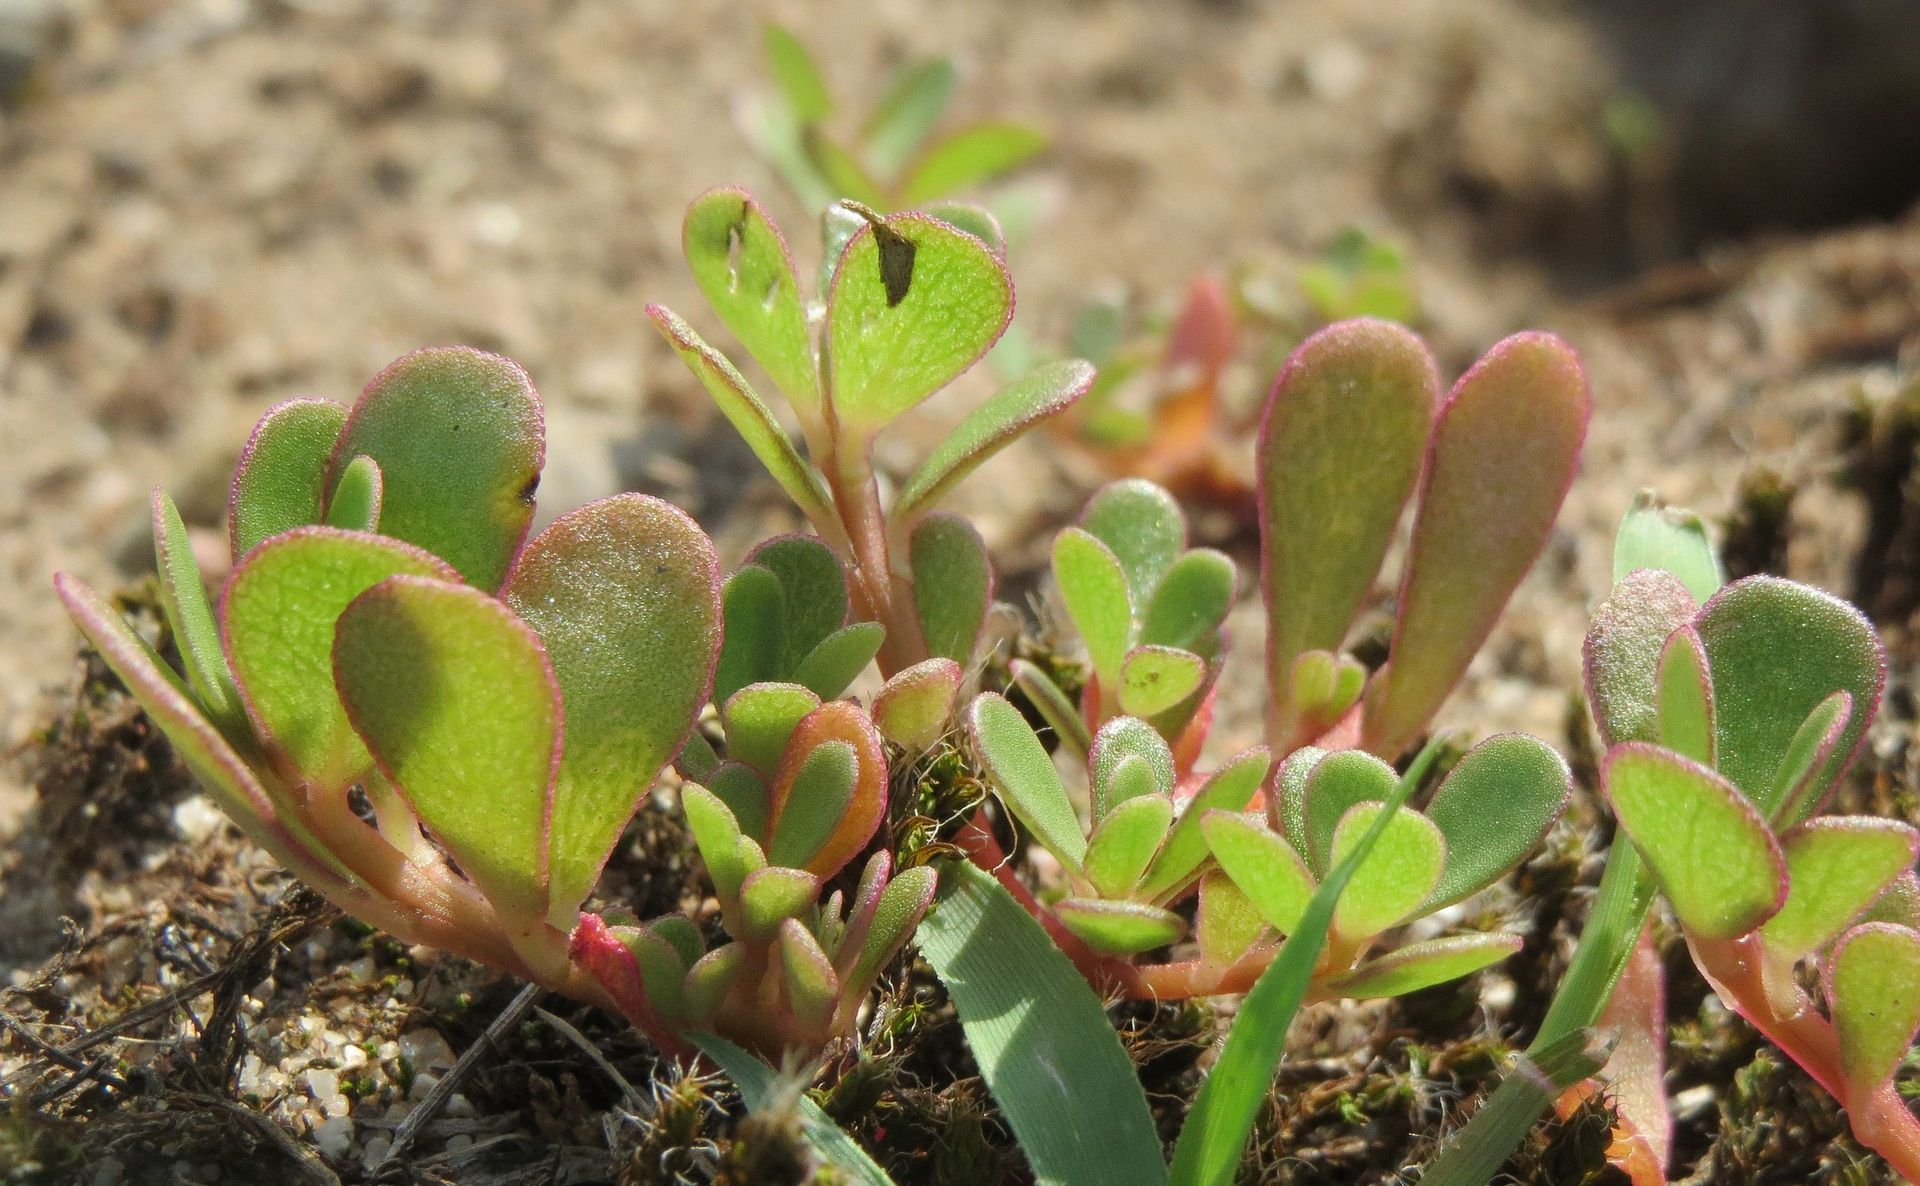 Common purslane, one of the world's most beneficial edible succulents